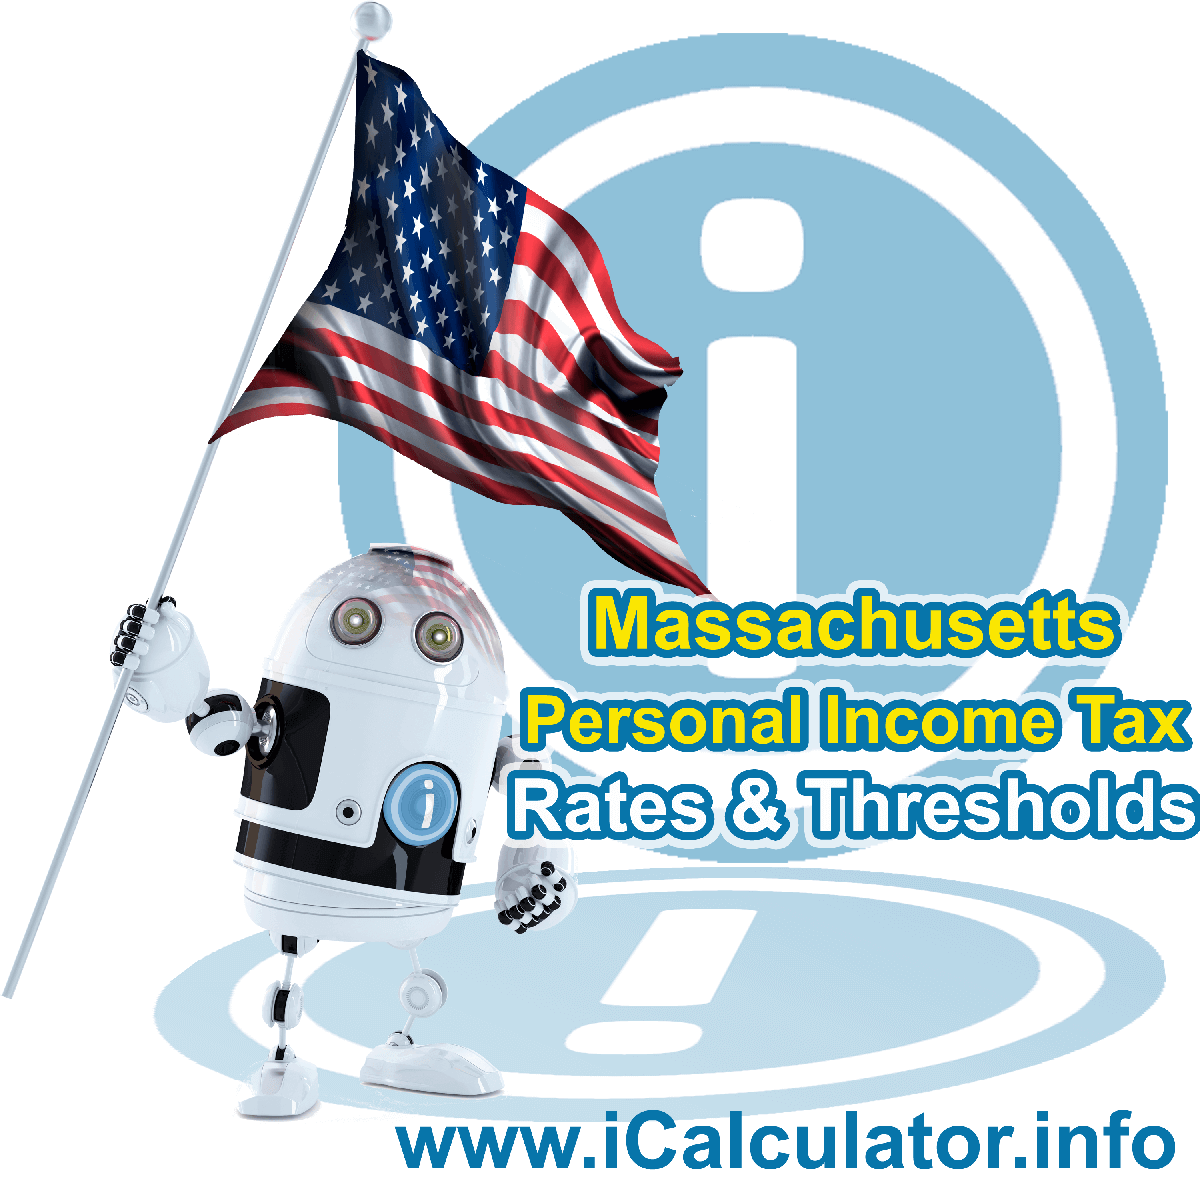 Massachusetts State Tax Tables 2013. This image displays details of the Massachusetts State Tax Tables for the 2013 tax return year which is provided in support of the 2013 US Tax Calculator